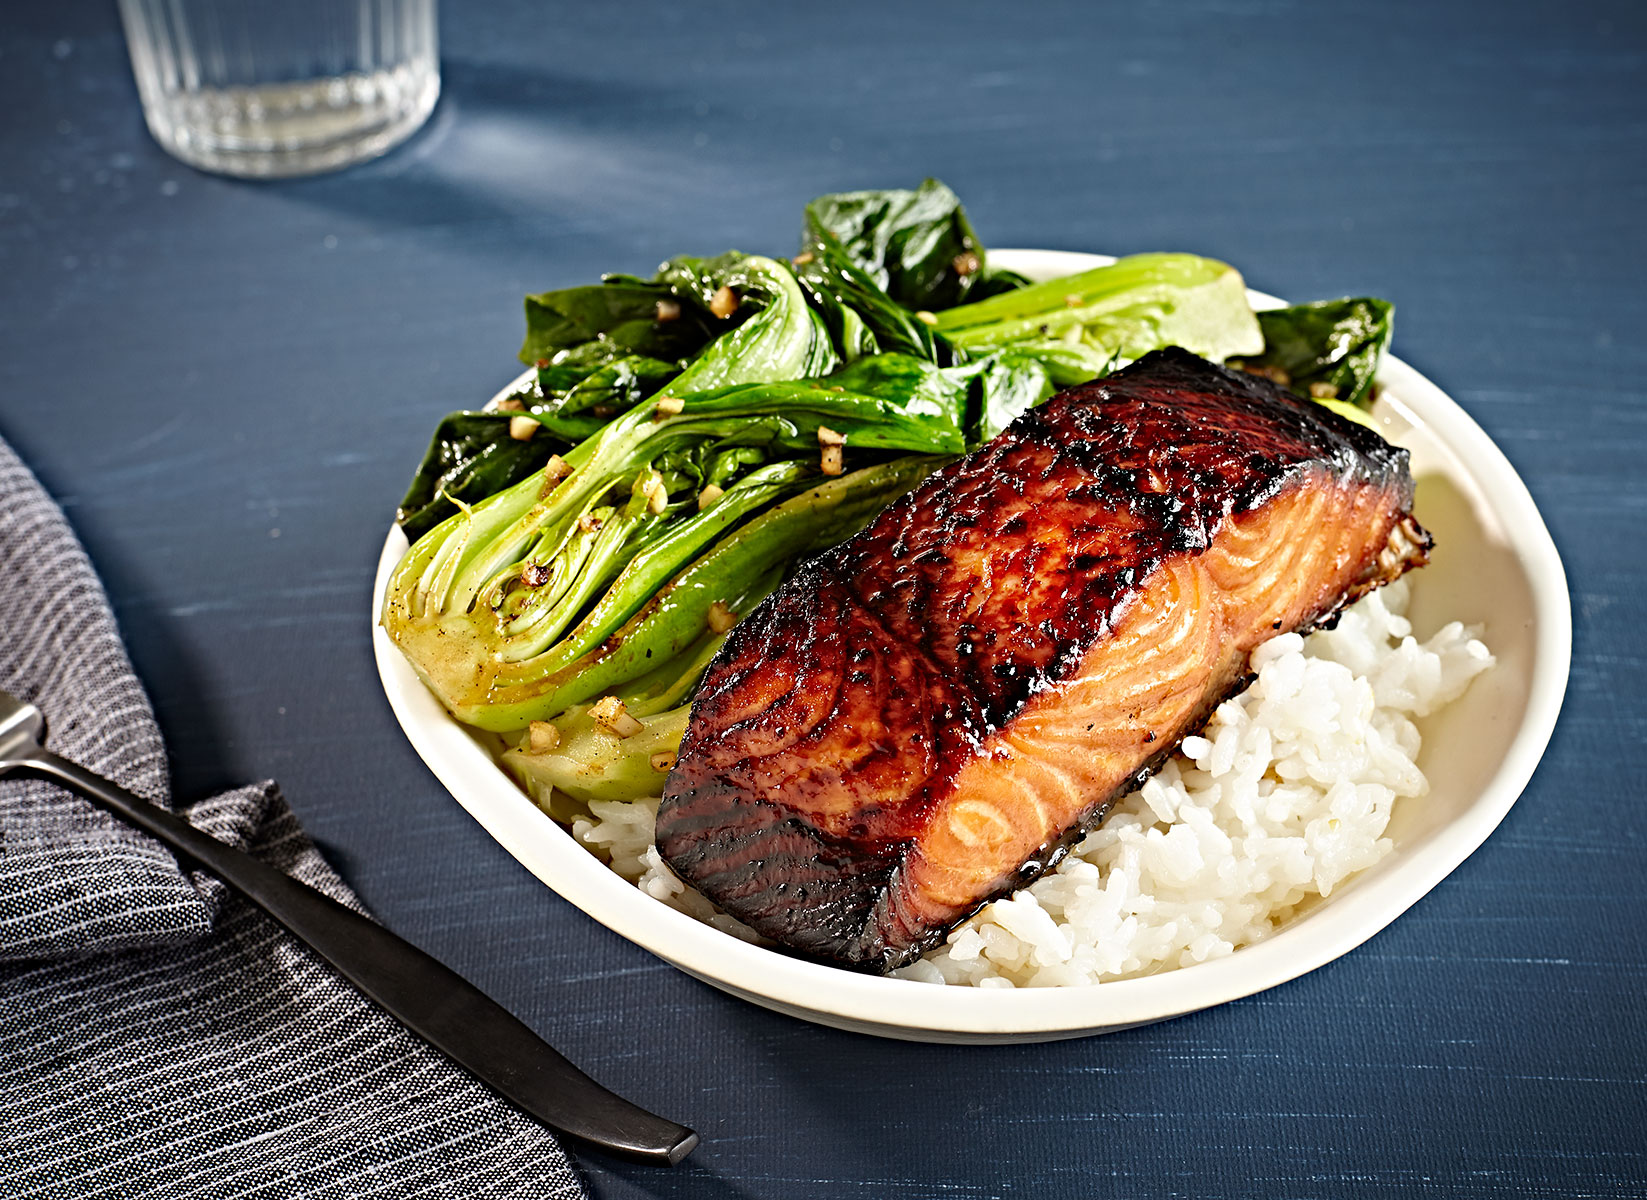 Miso charred salmon steak on sticky rice with a side of sauteed bok choy.